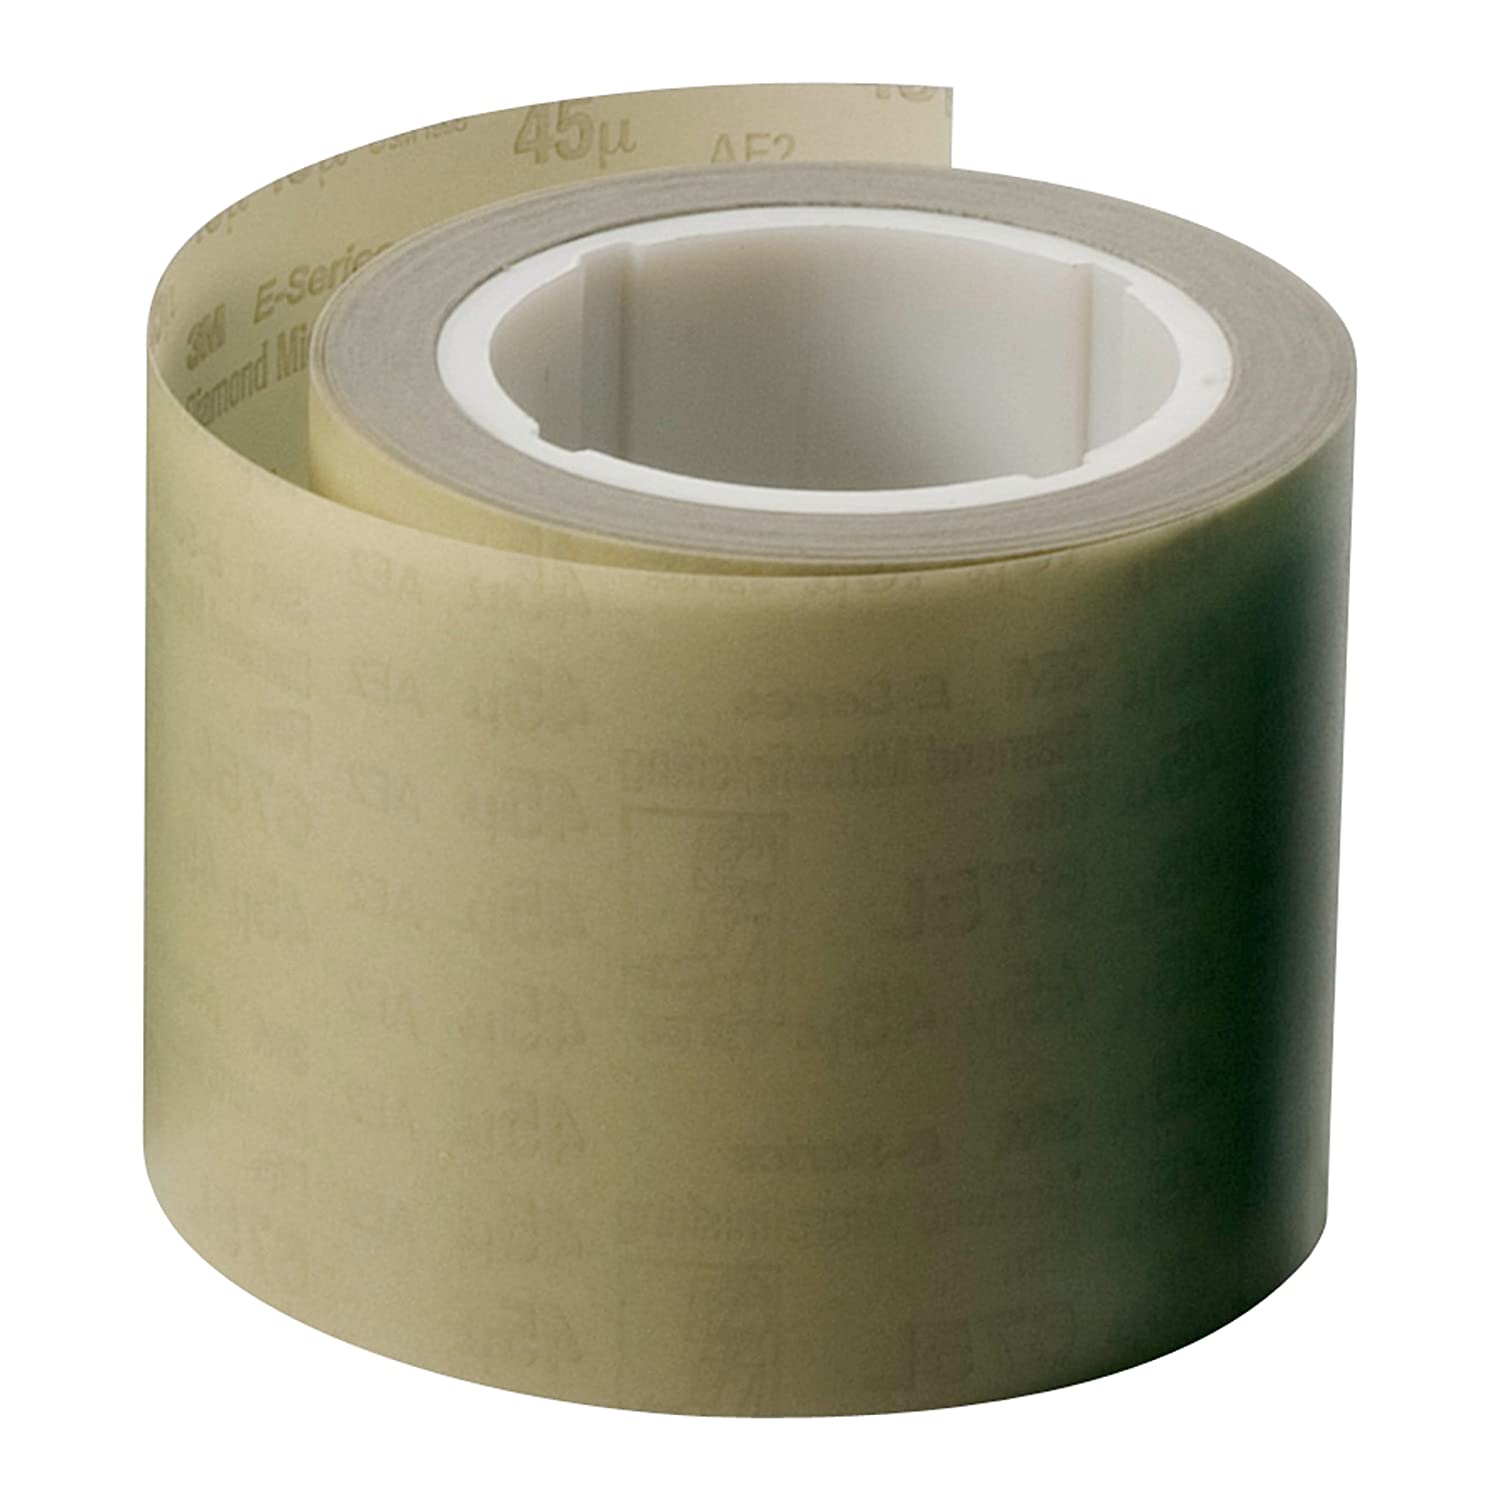 1 per case 4 in x 50 ft Gray//Yellow 3M Make to Order Items x 3 in 45 Micron ASO Keyed Core 60 in Feed 3M 27397-case Diamond Micro Finishing Film Roll 675L